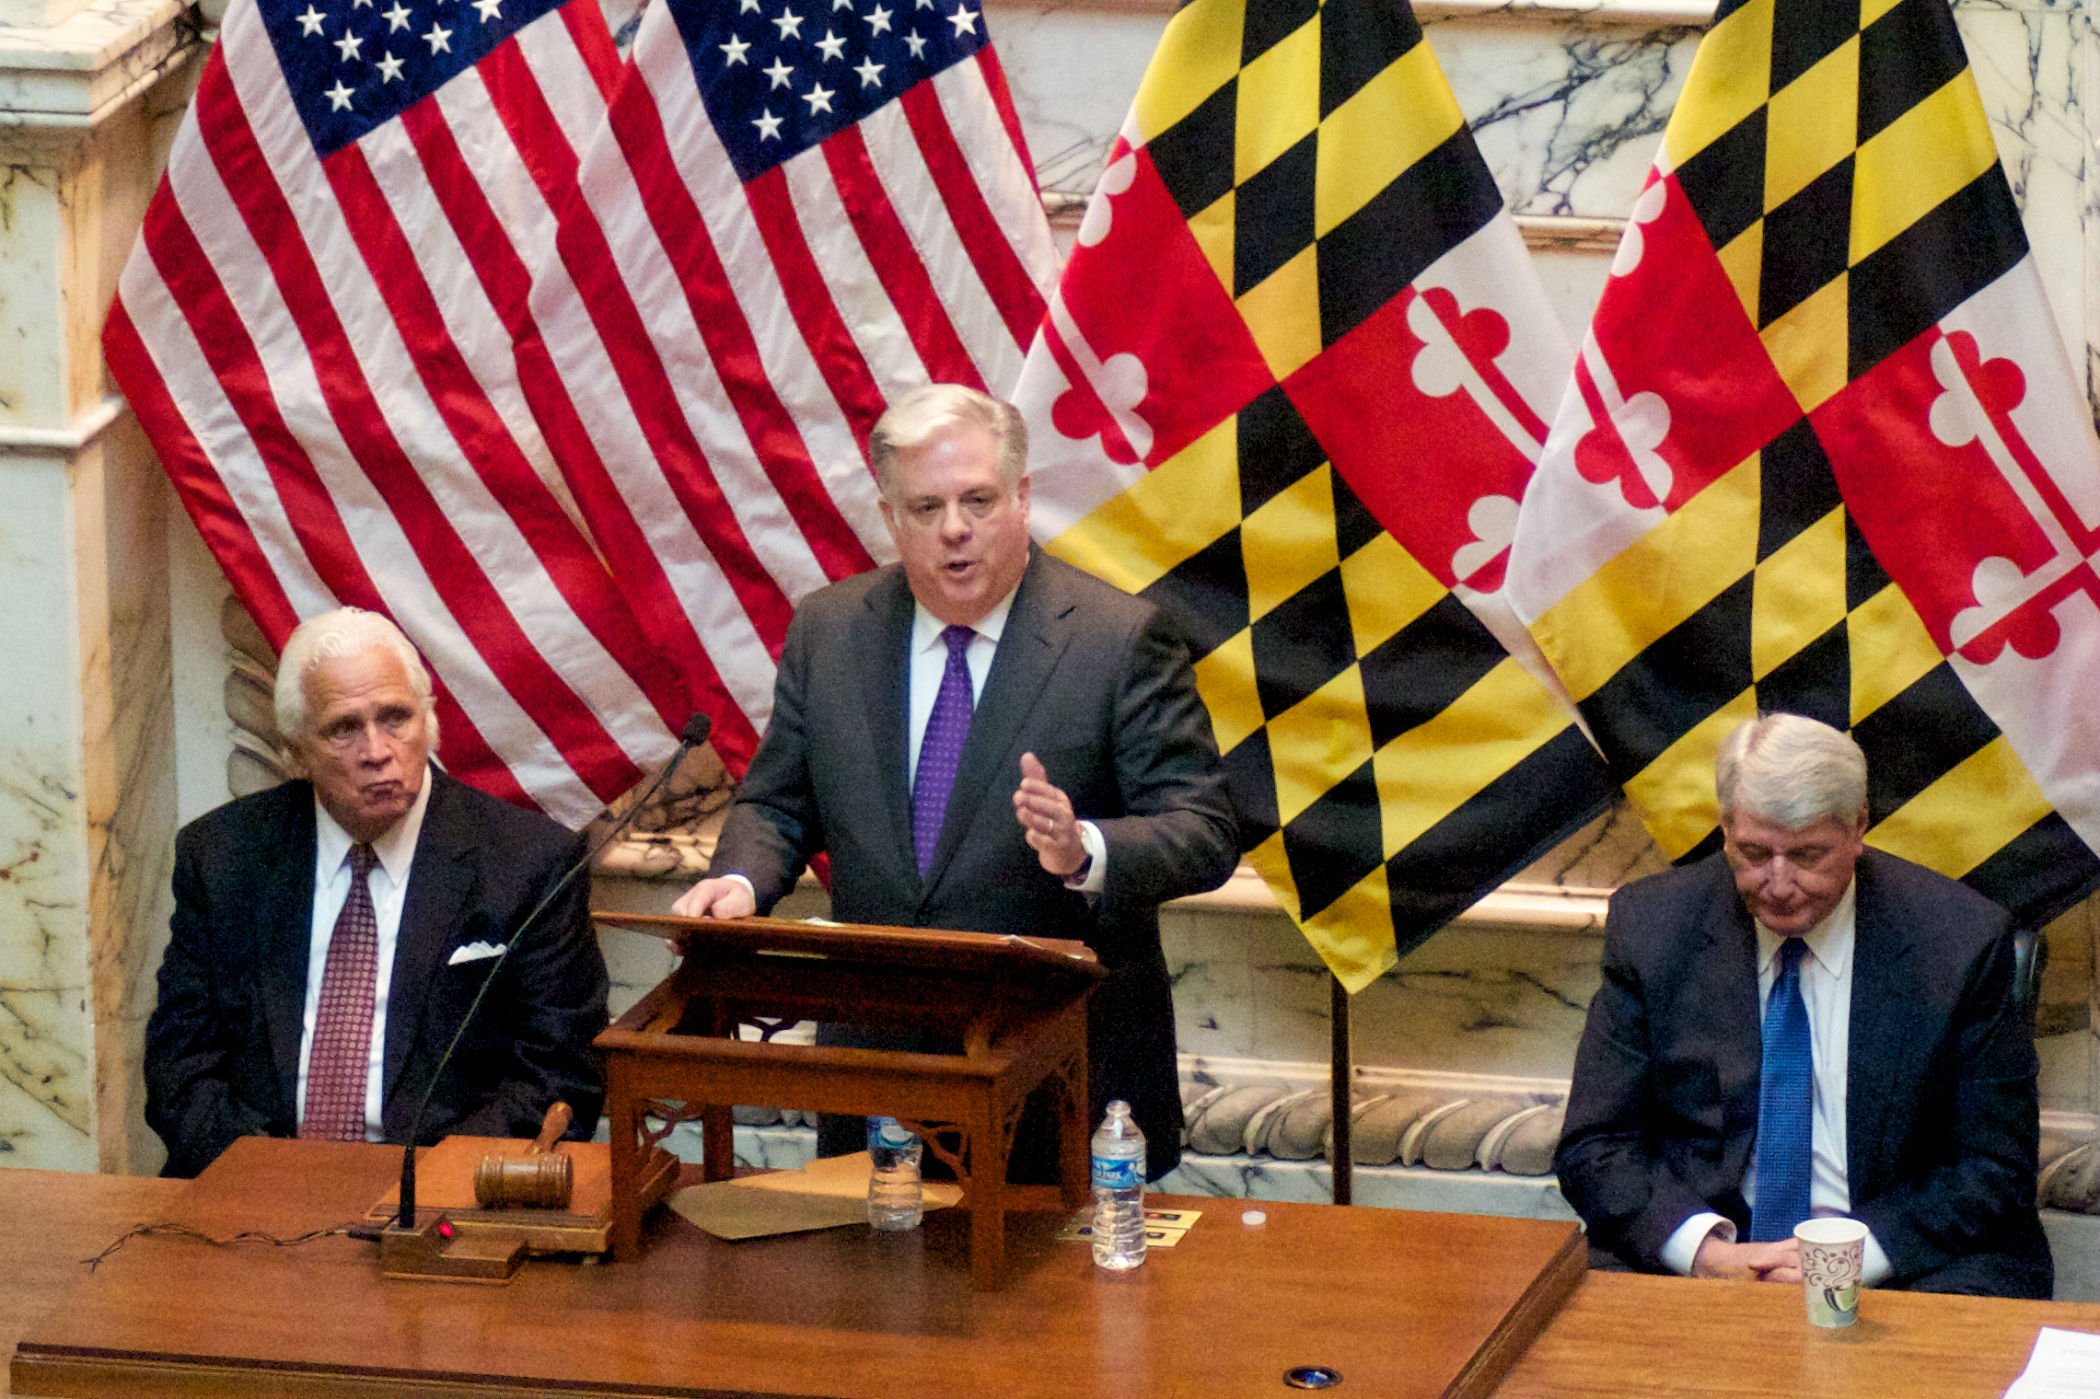 Rascovar: Hogan's choice on the last day — fight or declare victory